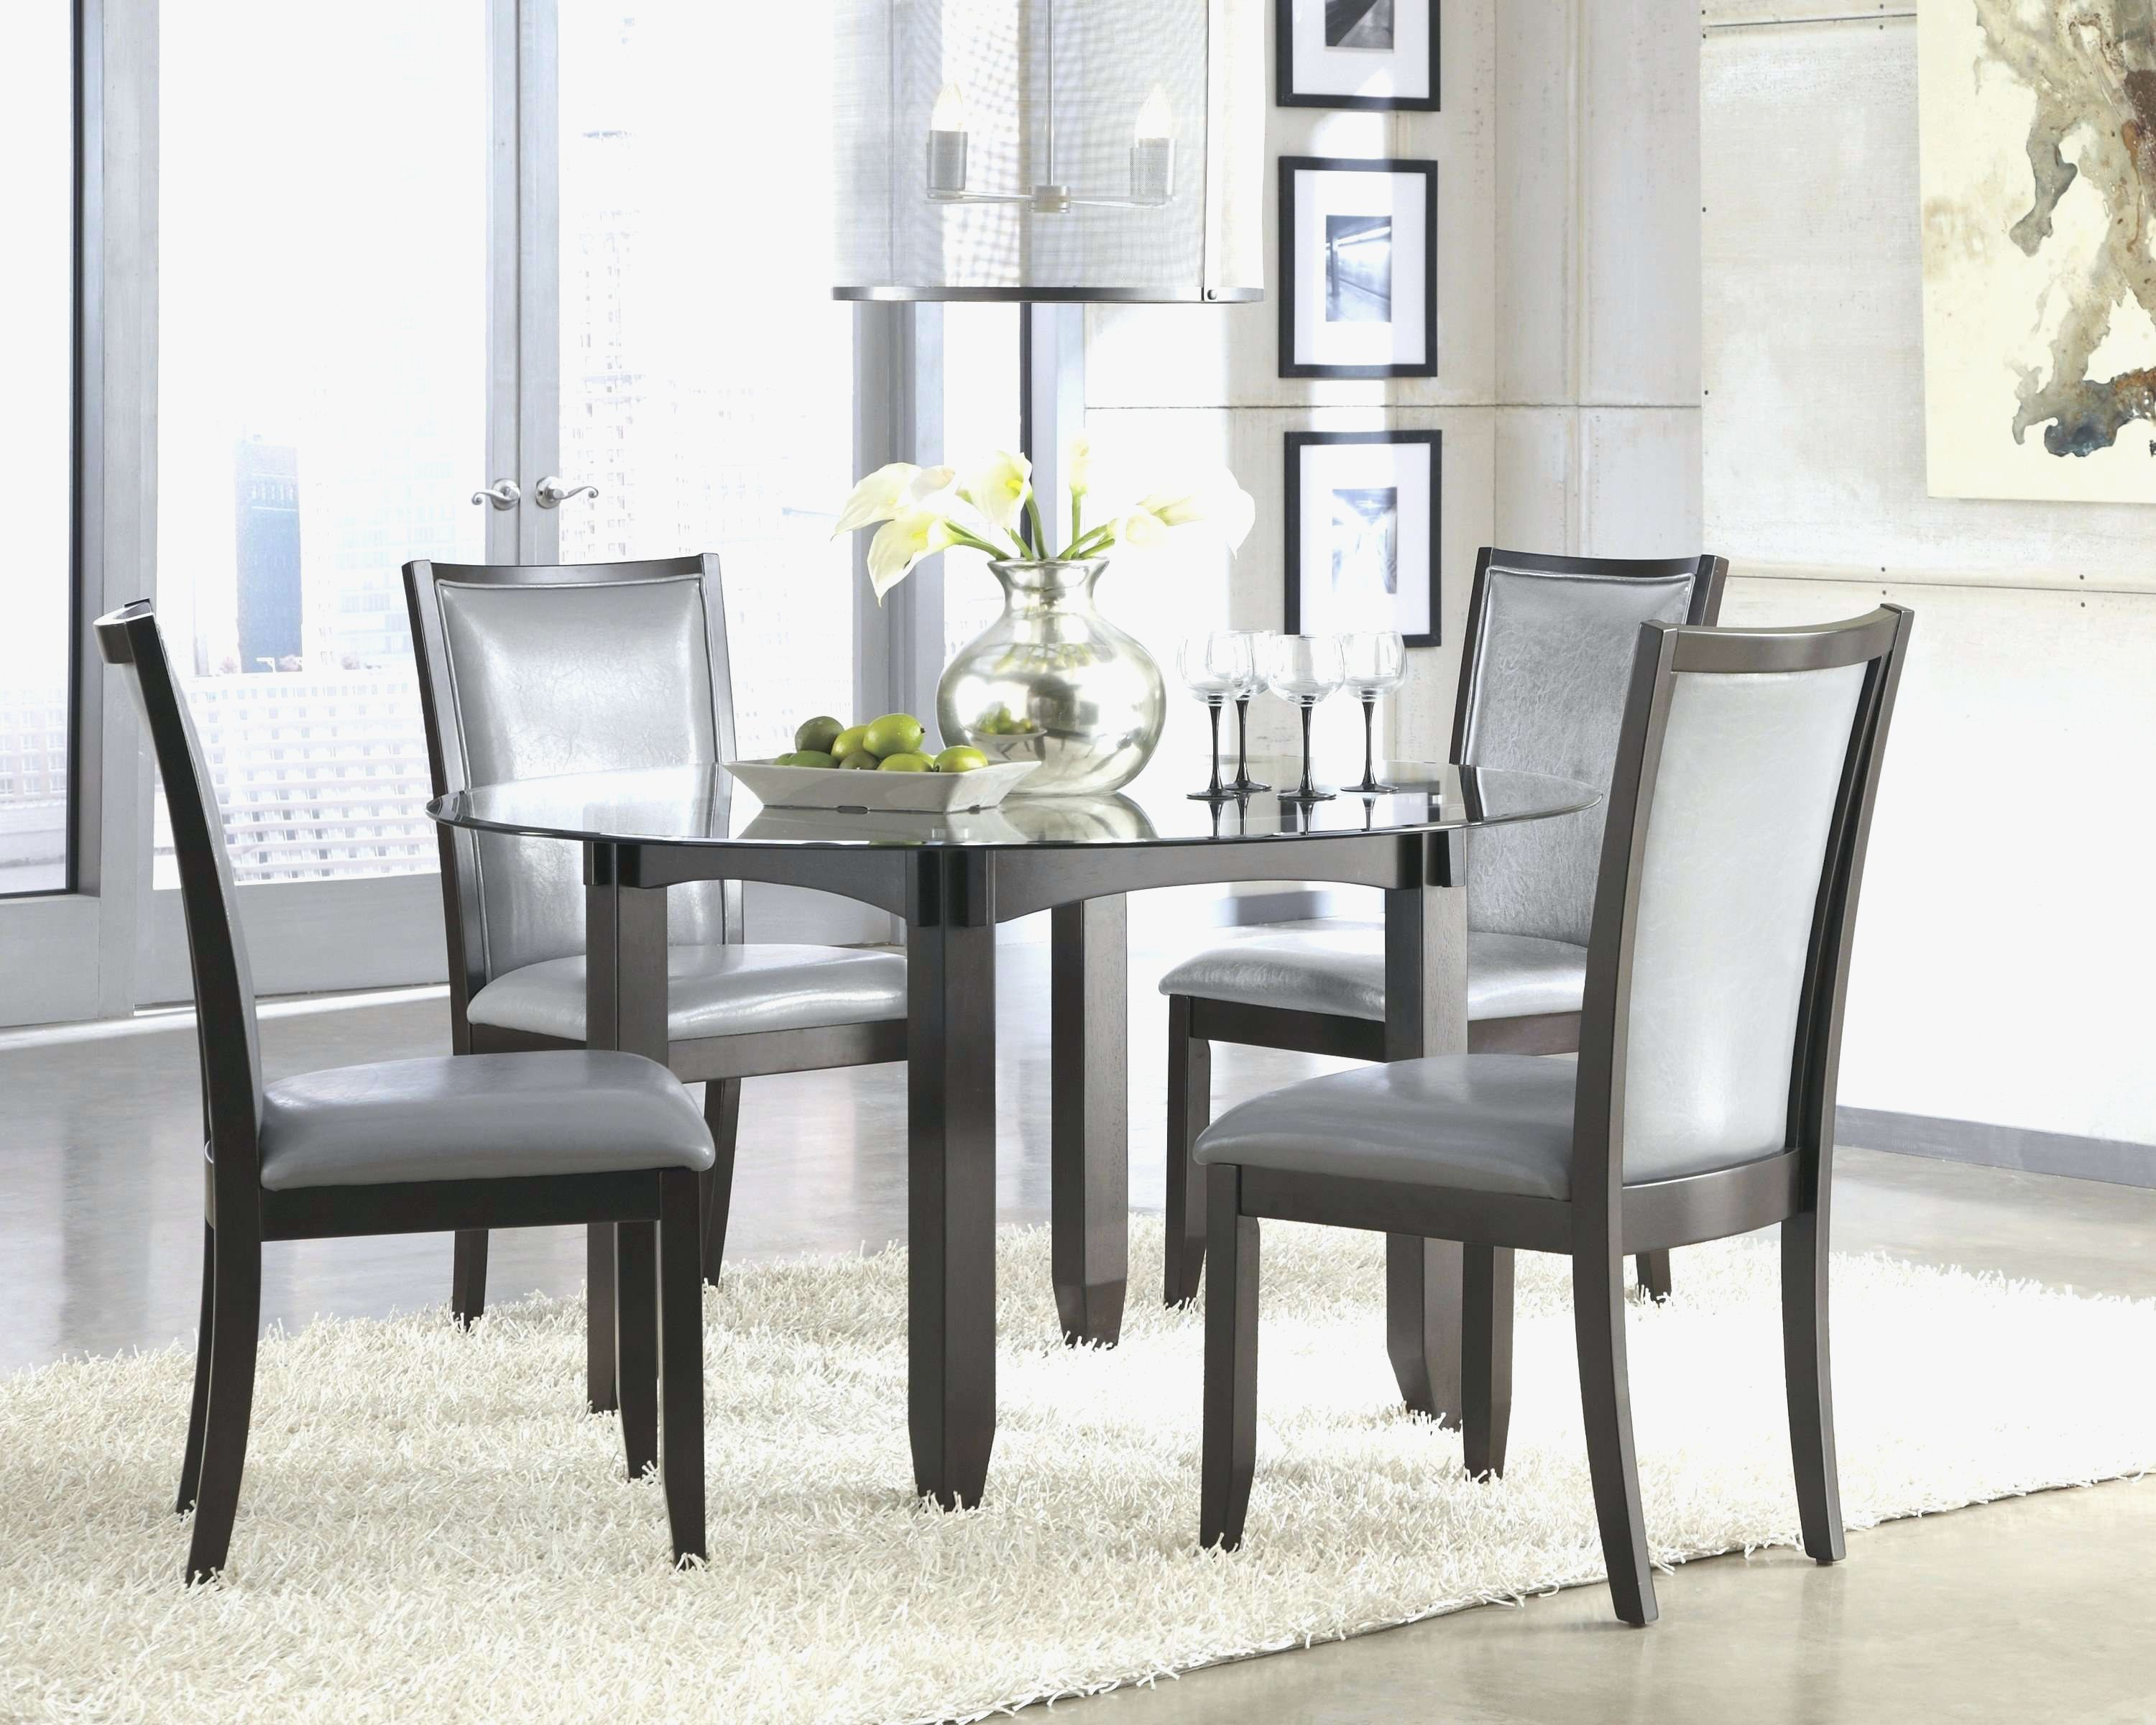 Modern Round Glass Dining Table Set Https Www Otoseriilan Com Grey Dining Tables Round Dining Room Sets Round Dining Room